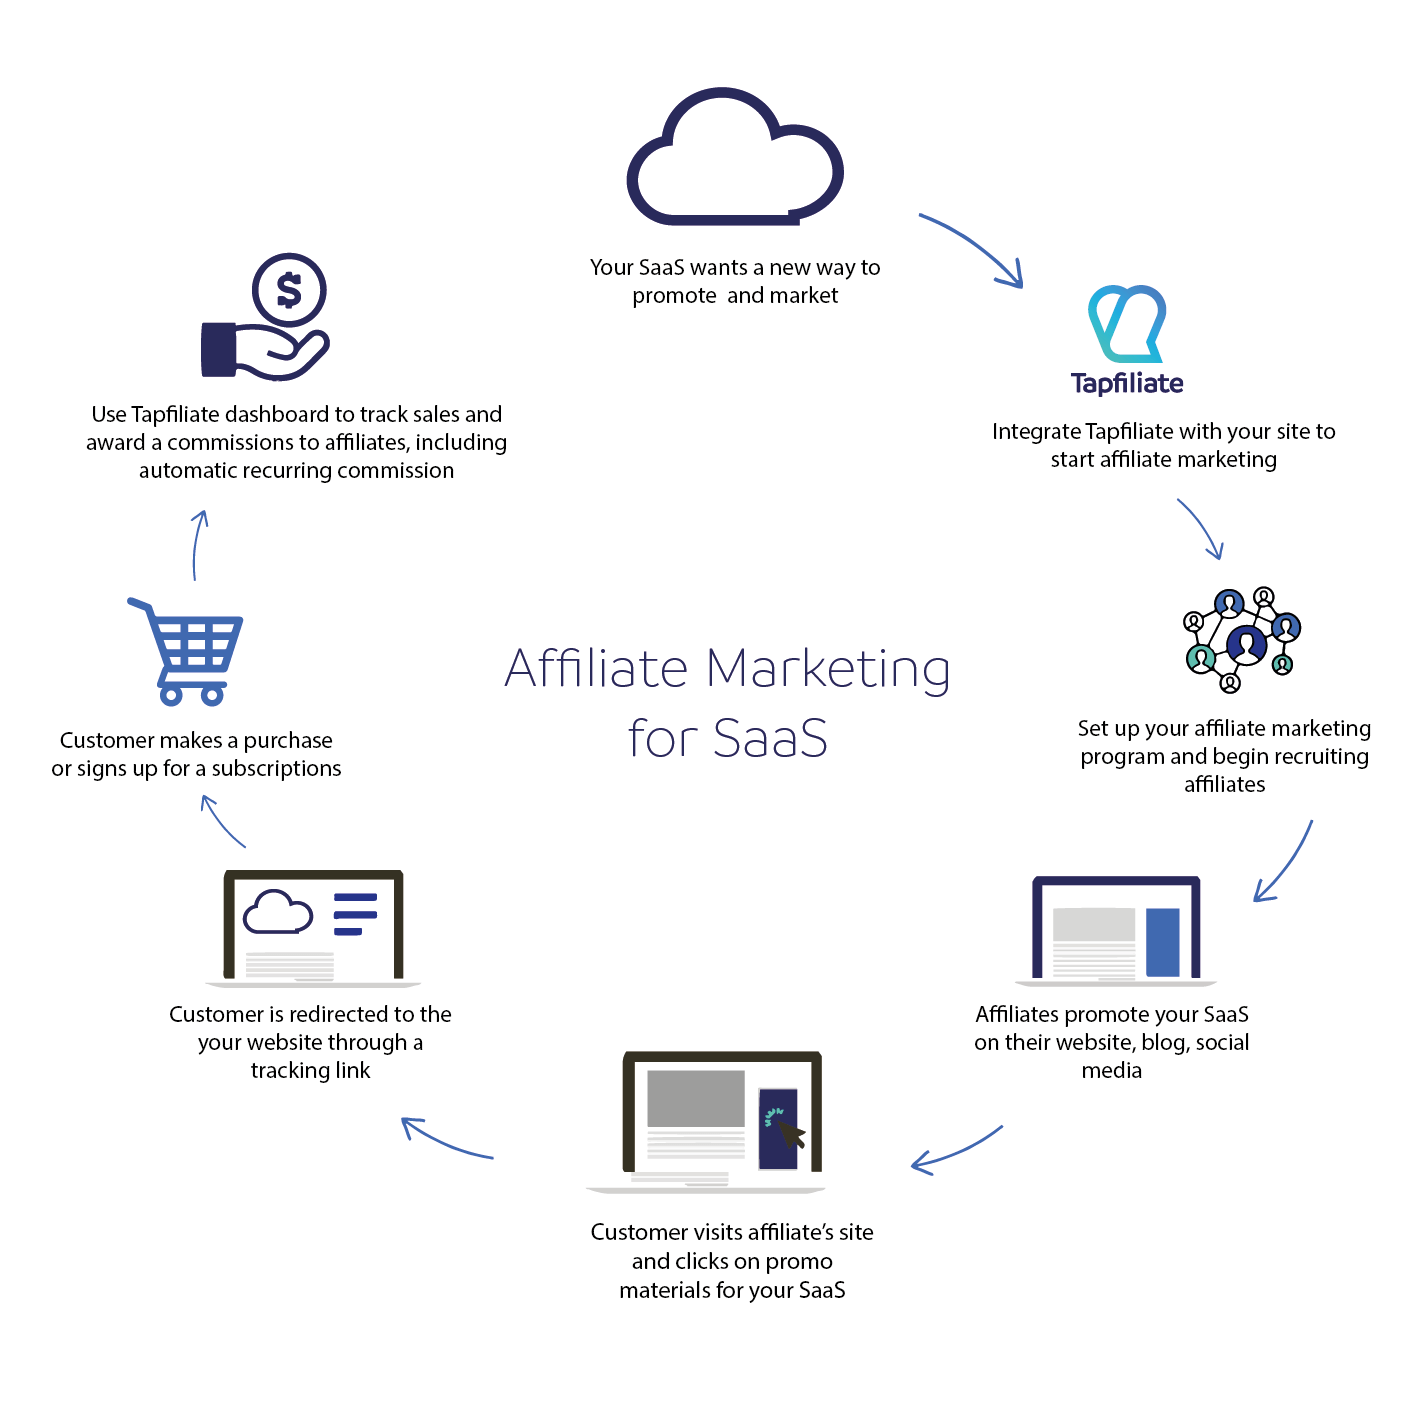 How does a saas partner program work, or affiliate marketing in general